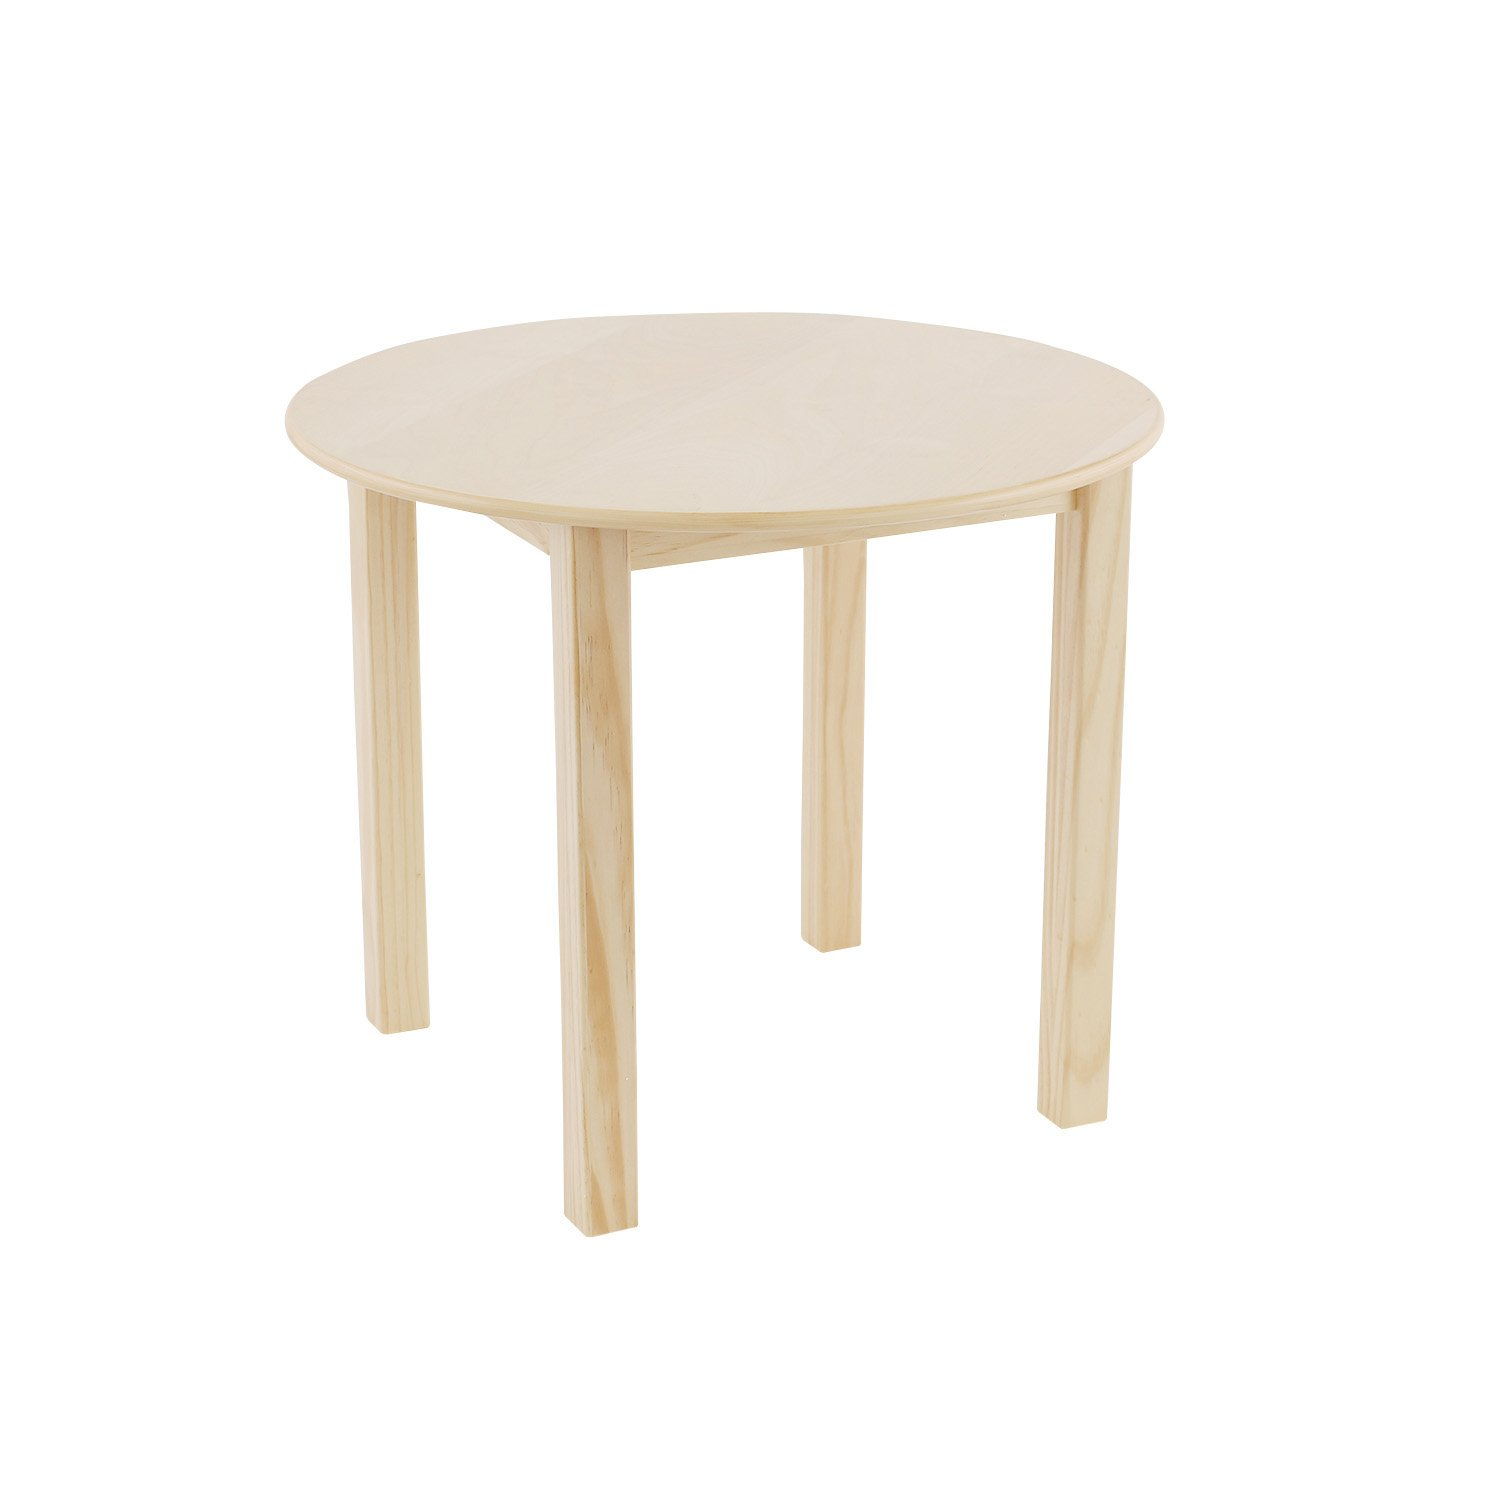 Max & Lily Natural Wood Kid and Toddler Round Table, Natural